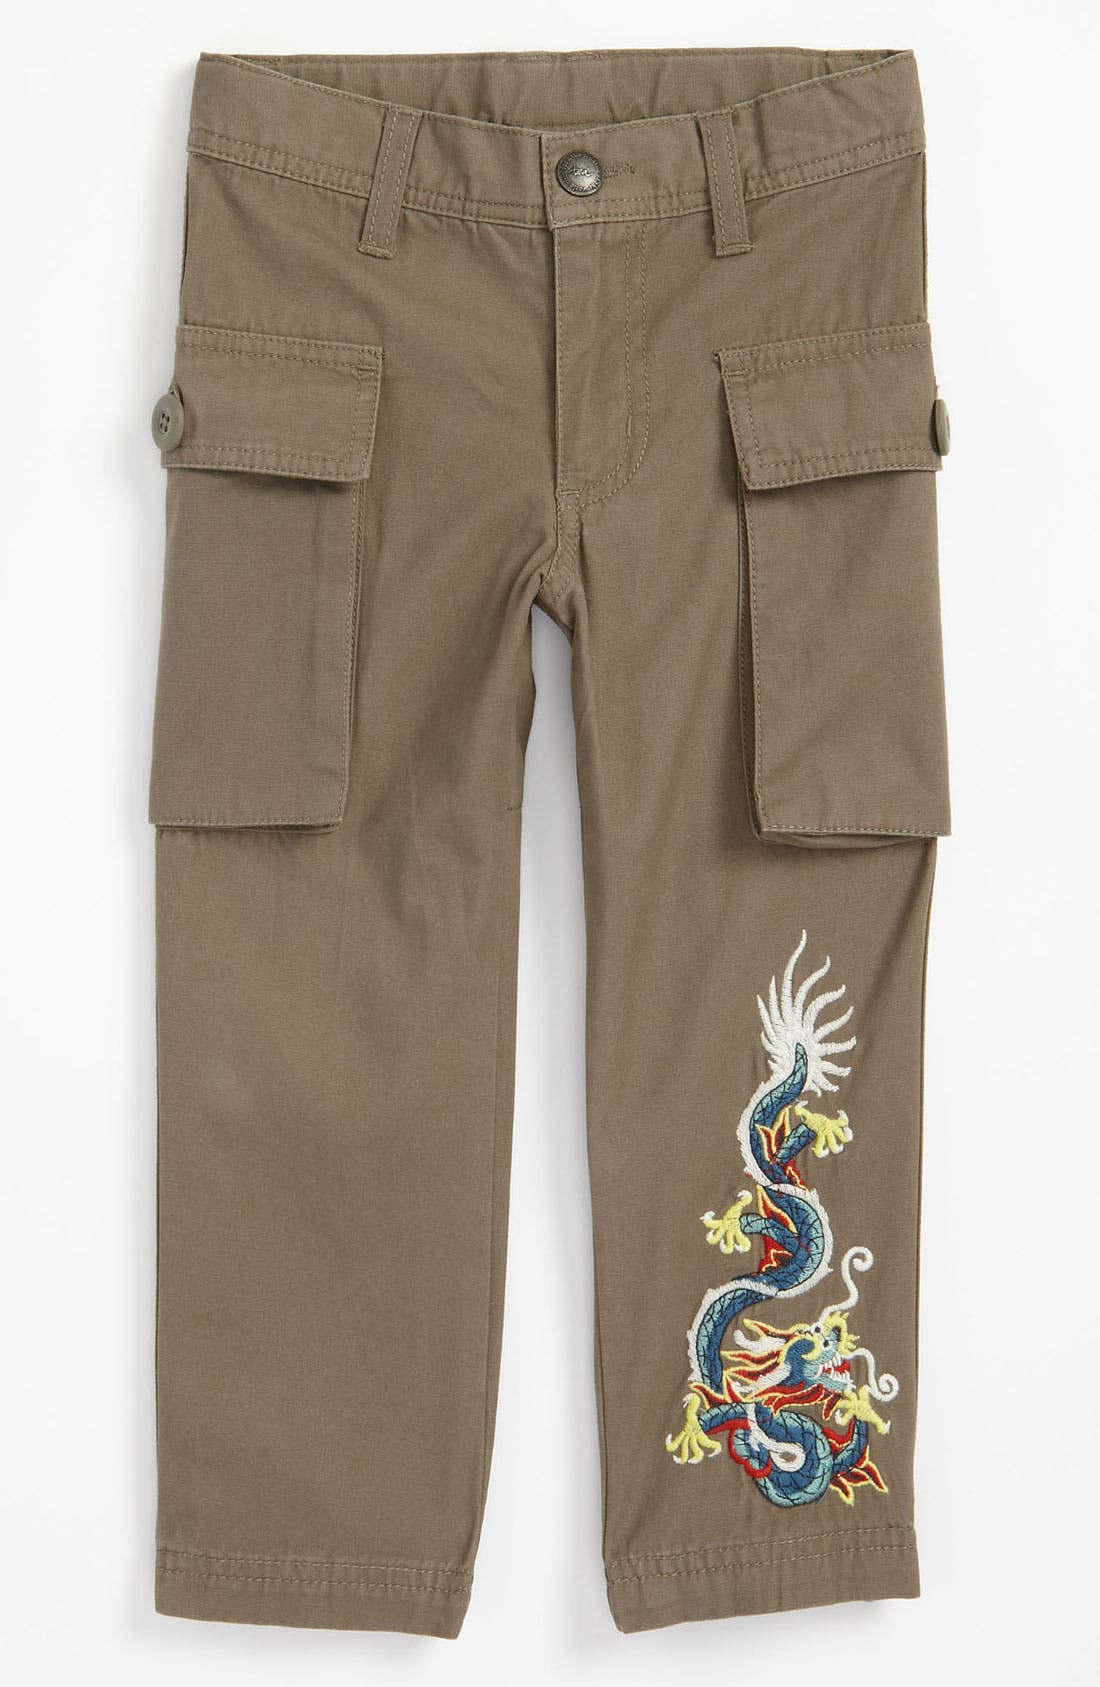 Alternate Image 1 Selected - Tea Collection 'Dragon' Pants (Toddler)